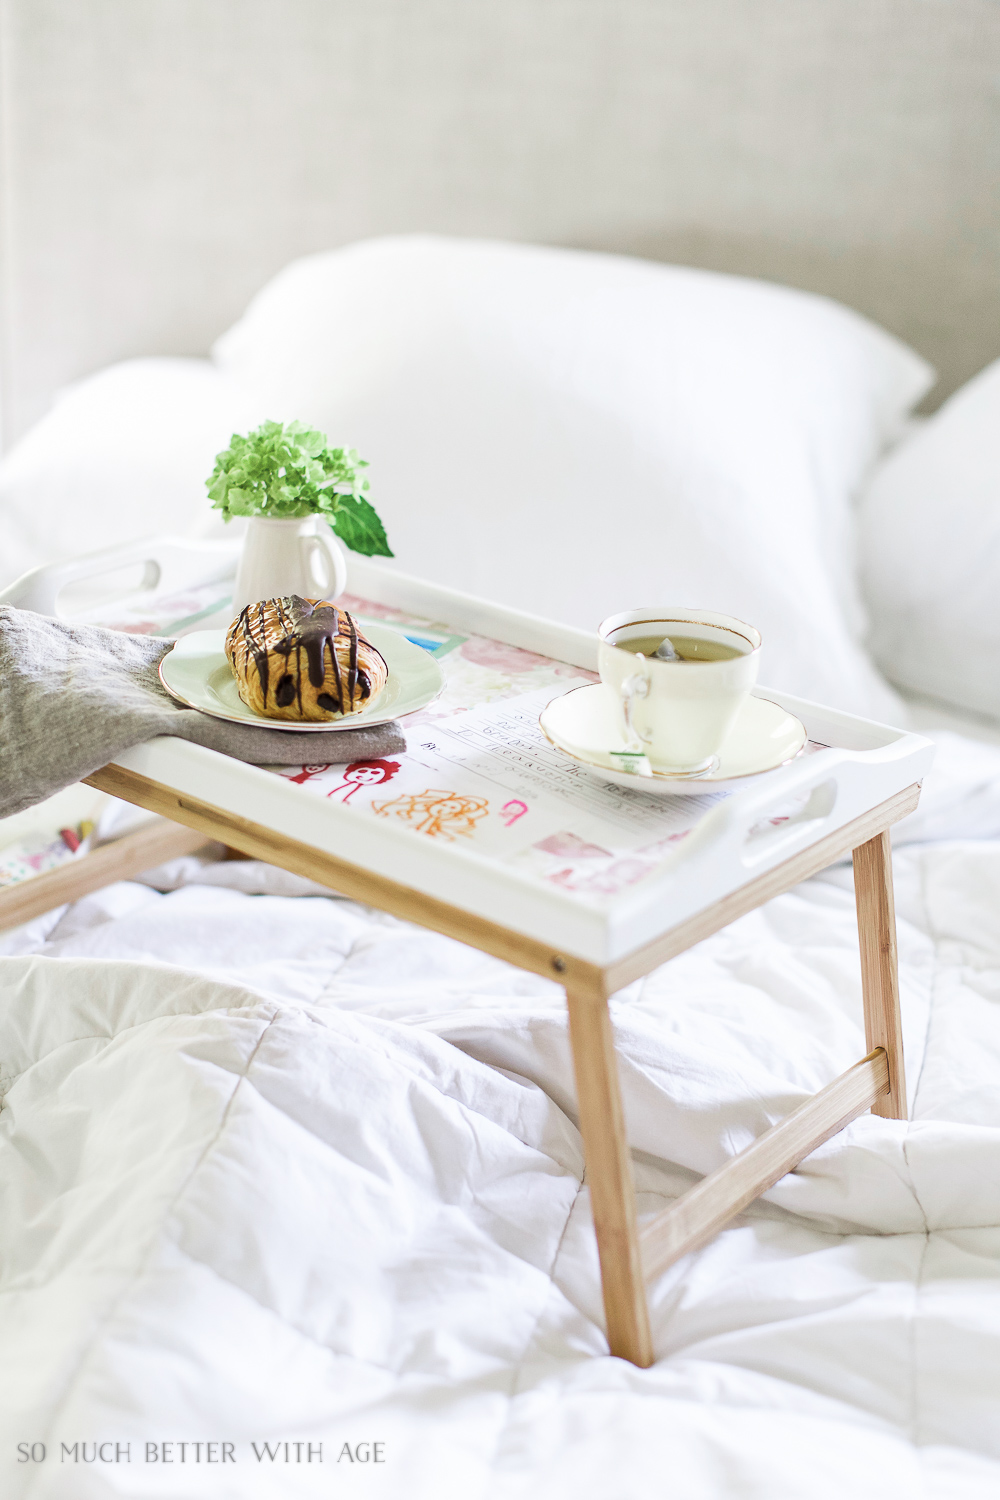 Mother's Day breakfast-in-bed tray with decoupaged kids' art / teacup and chocolate croissant - So Much Better With Age